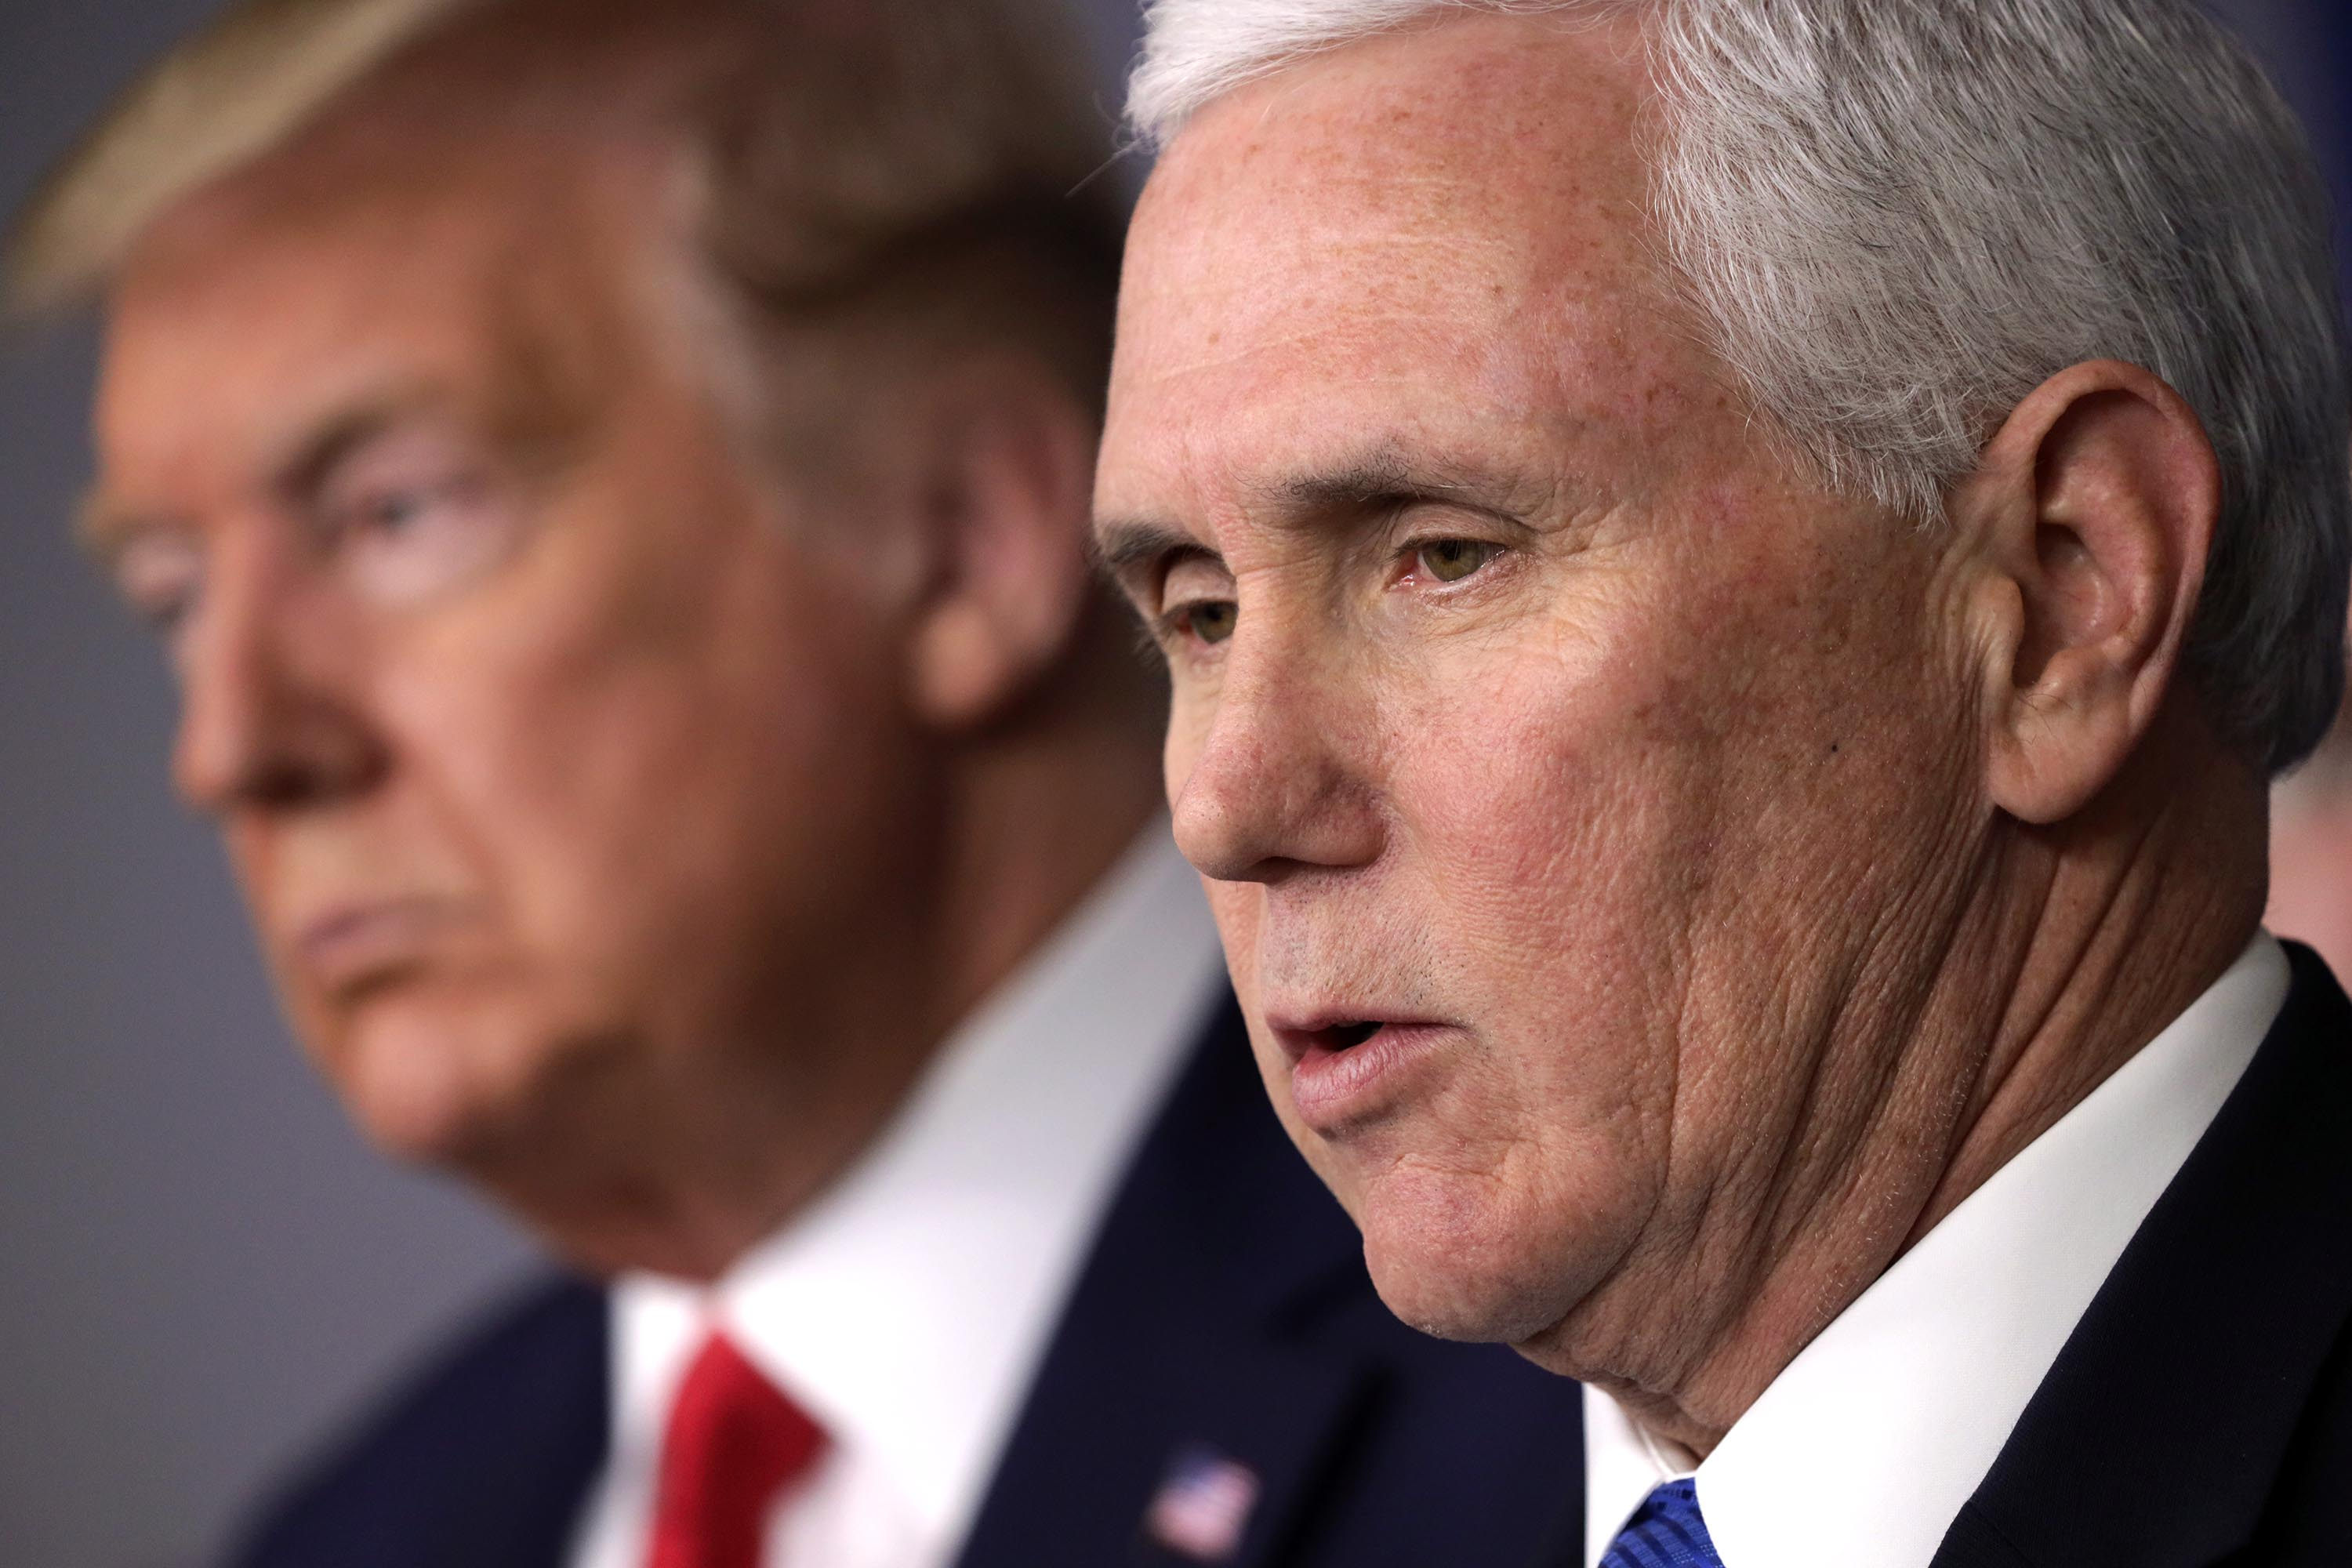 Pence seeks to blame CDC and China for any delay in US coronavirus response — not Trump's initial failure to face reality